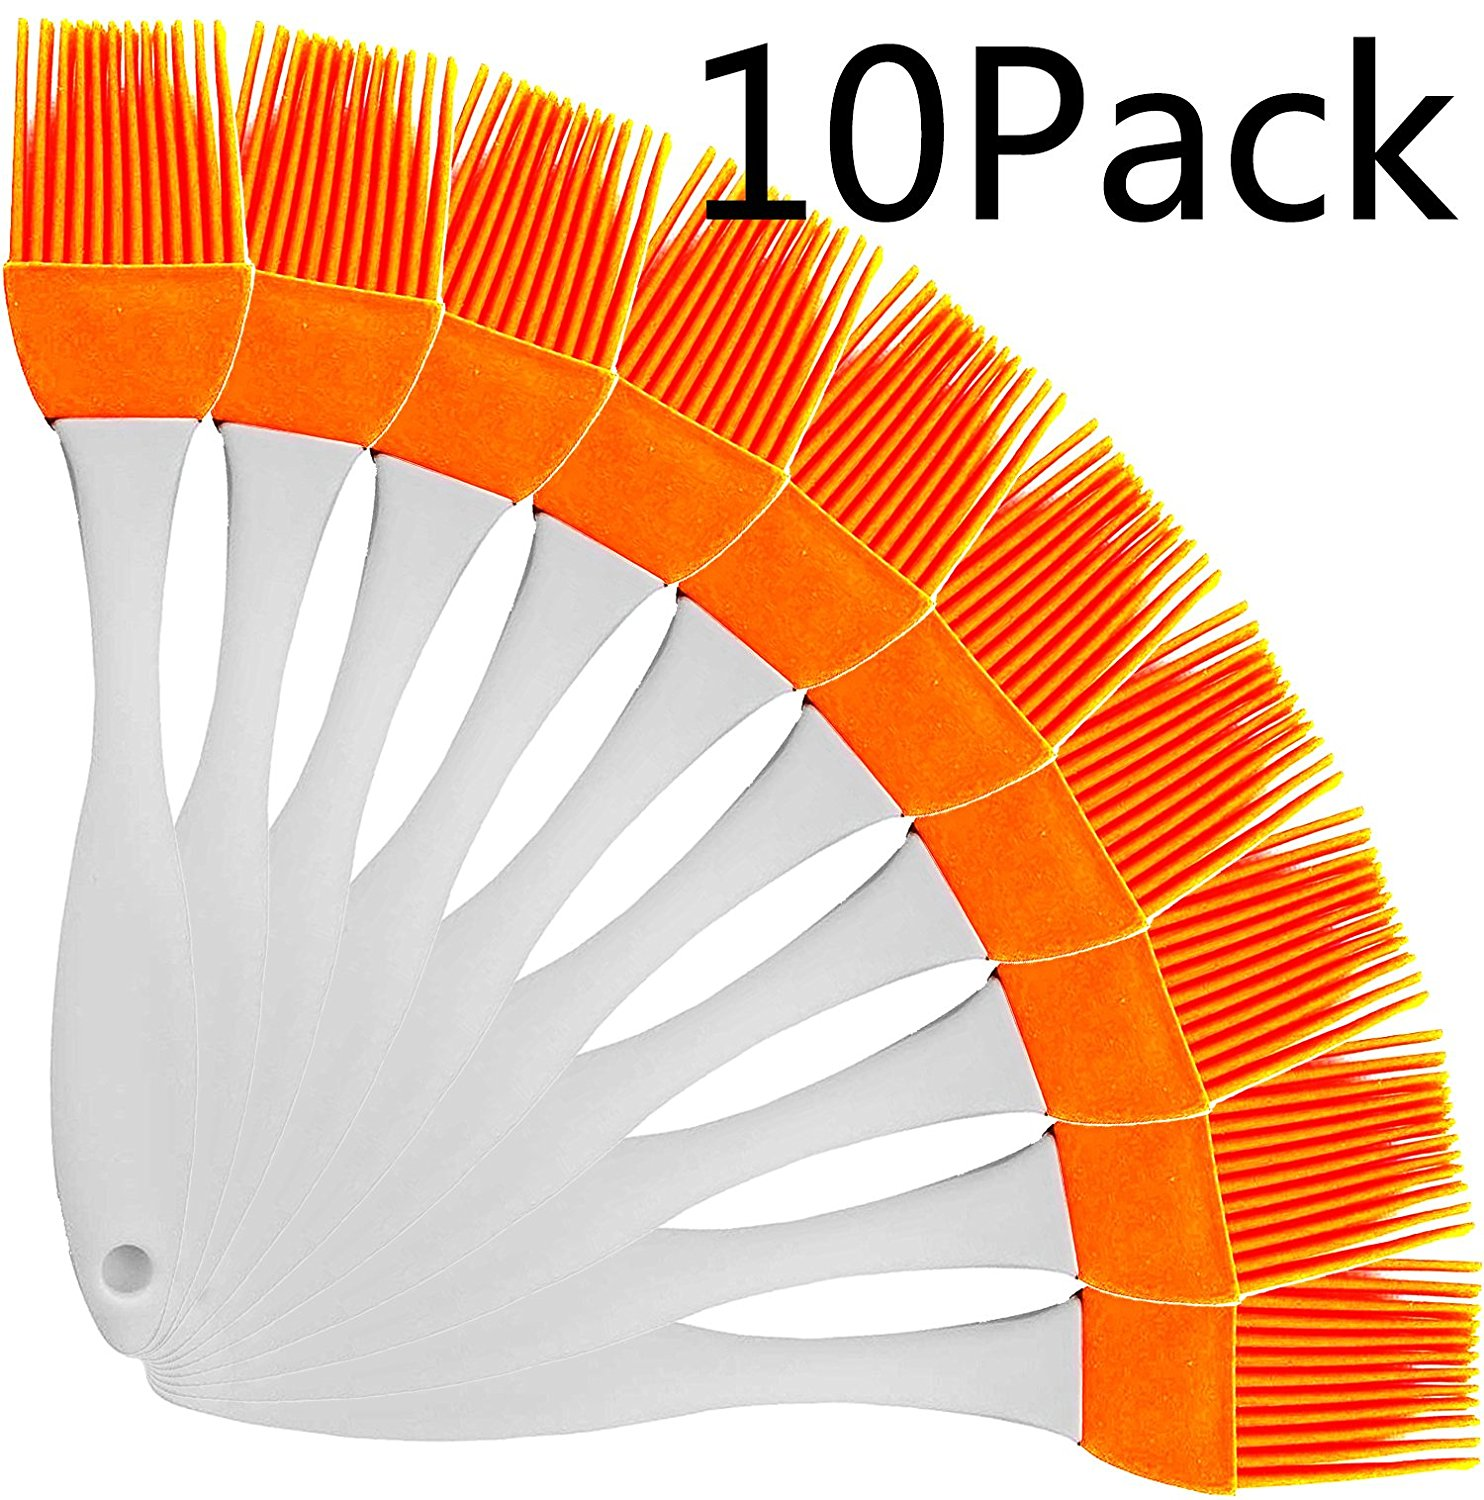 10 Sets Silicone Basting Pastry Brushe Heat Resistant BBQ Barbecue Pastry Brushes by